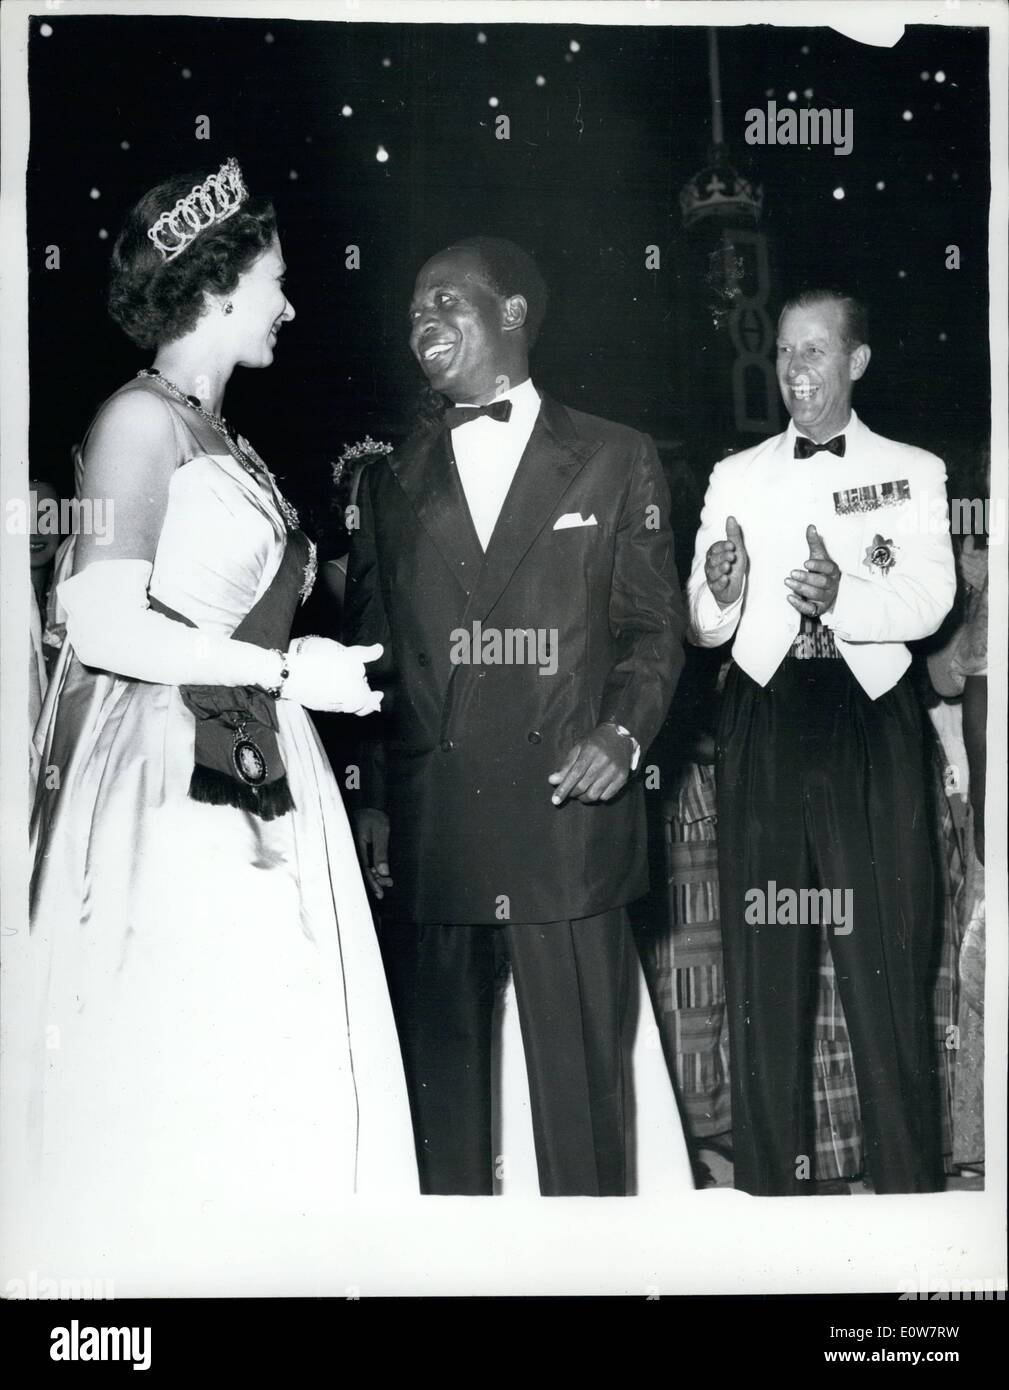 Nov. 11, 1961 - Queen Dances The ''High Life'' With Dr. Nkrumah. Night Out In Accra - Ghana: The Duke Of Edinburgh applauds - as H.M. The Queen and Dr. Nkrumah end their dance the ''High Life'' -during a ball at State House, Accra, Ghana - during the week-end. ''High Life is a Ghanian speciality - ma sort of cross between the Shimmy and the Charleston - in which the feet go one way - and the hips another. - Stock Image